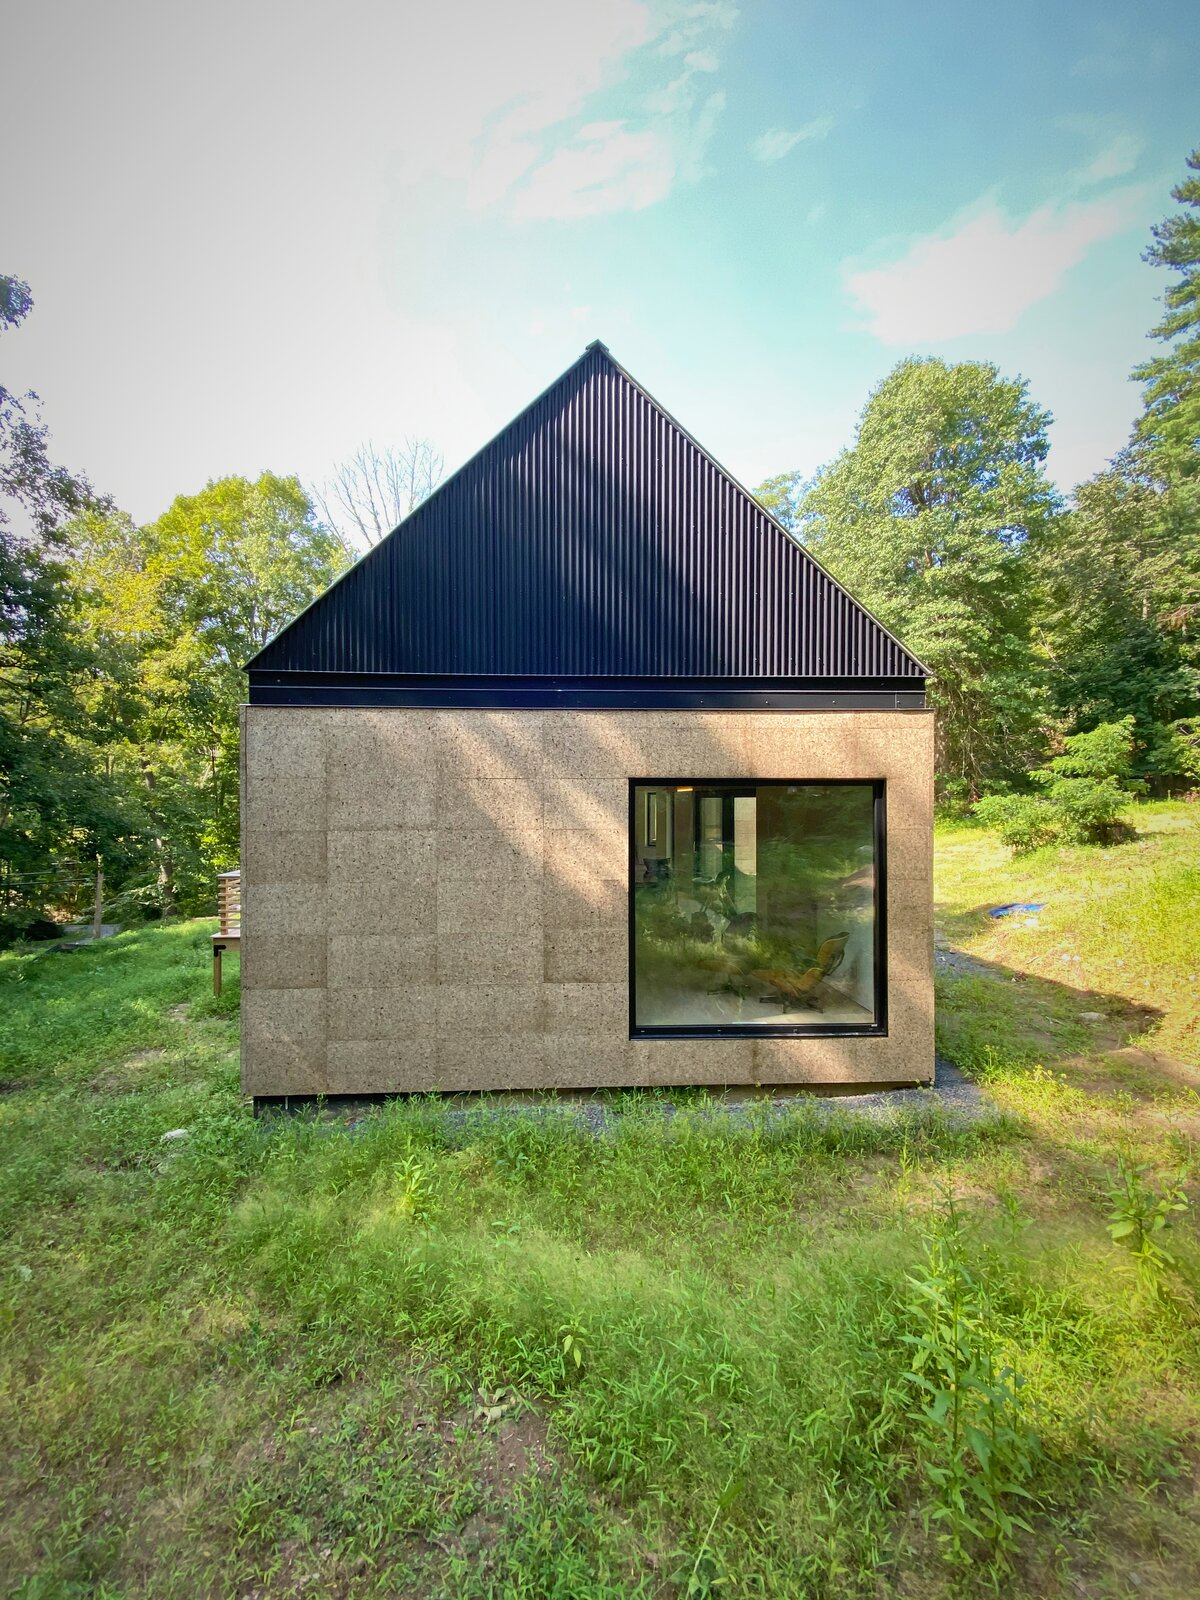 Exterior, Wood Siding Material, House Building Type, Gable RoofLine, Metal Roof Material, and Metal Siding Material Gable End   Cork Haven by Multitude Studio